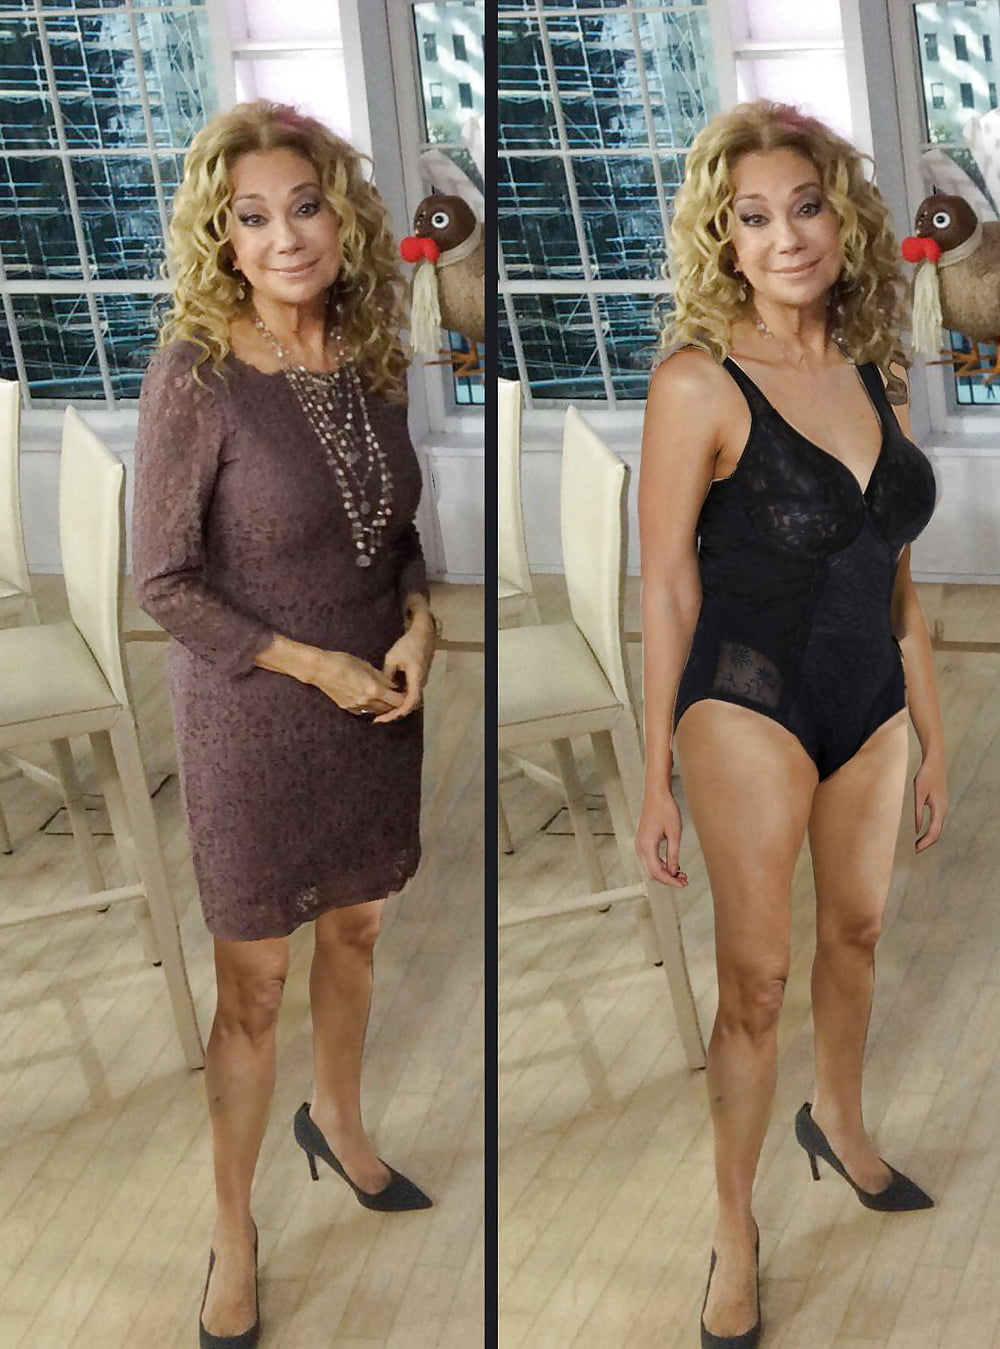 pictures-before-after-undress-naked-photos-glamorous-nude-amatuers